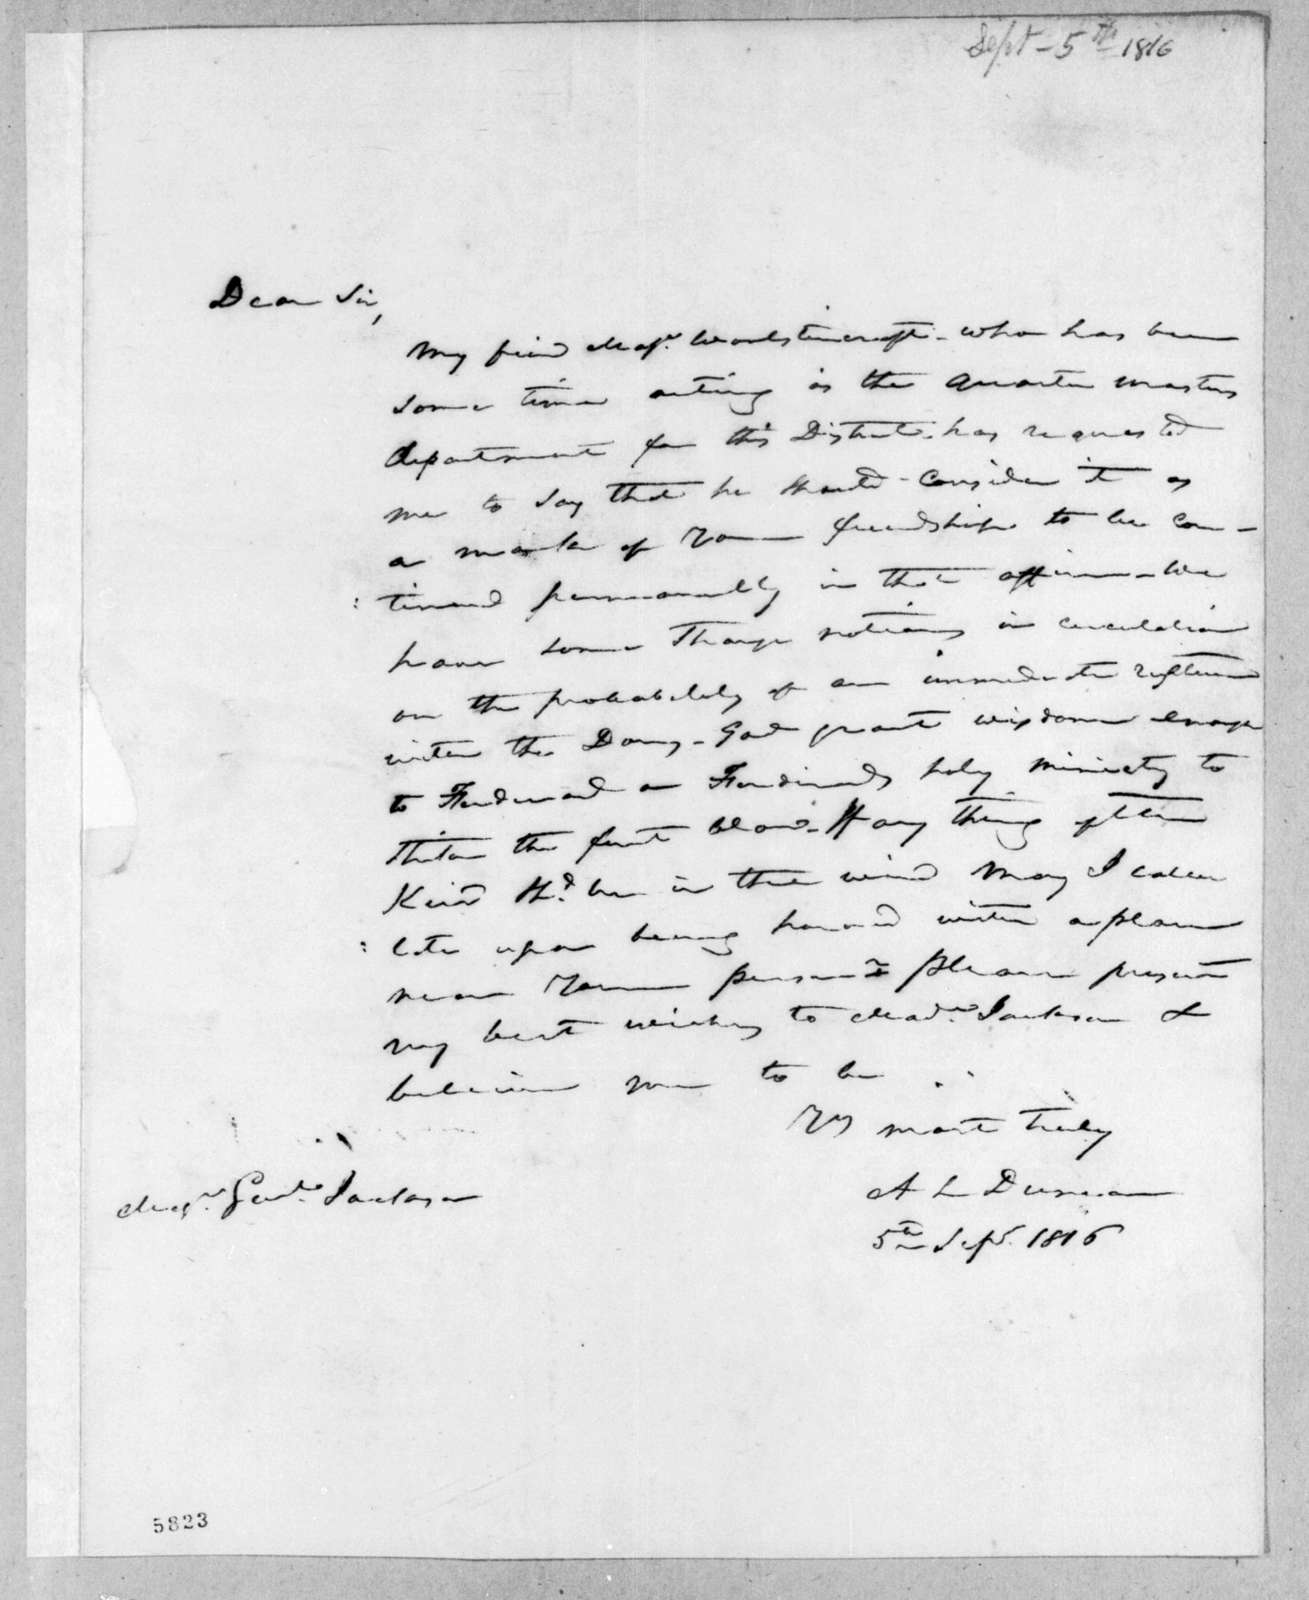 Abner Lawson Duncan to Andrew Jackson, September 5, 1816